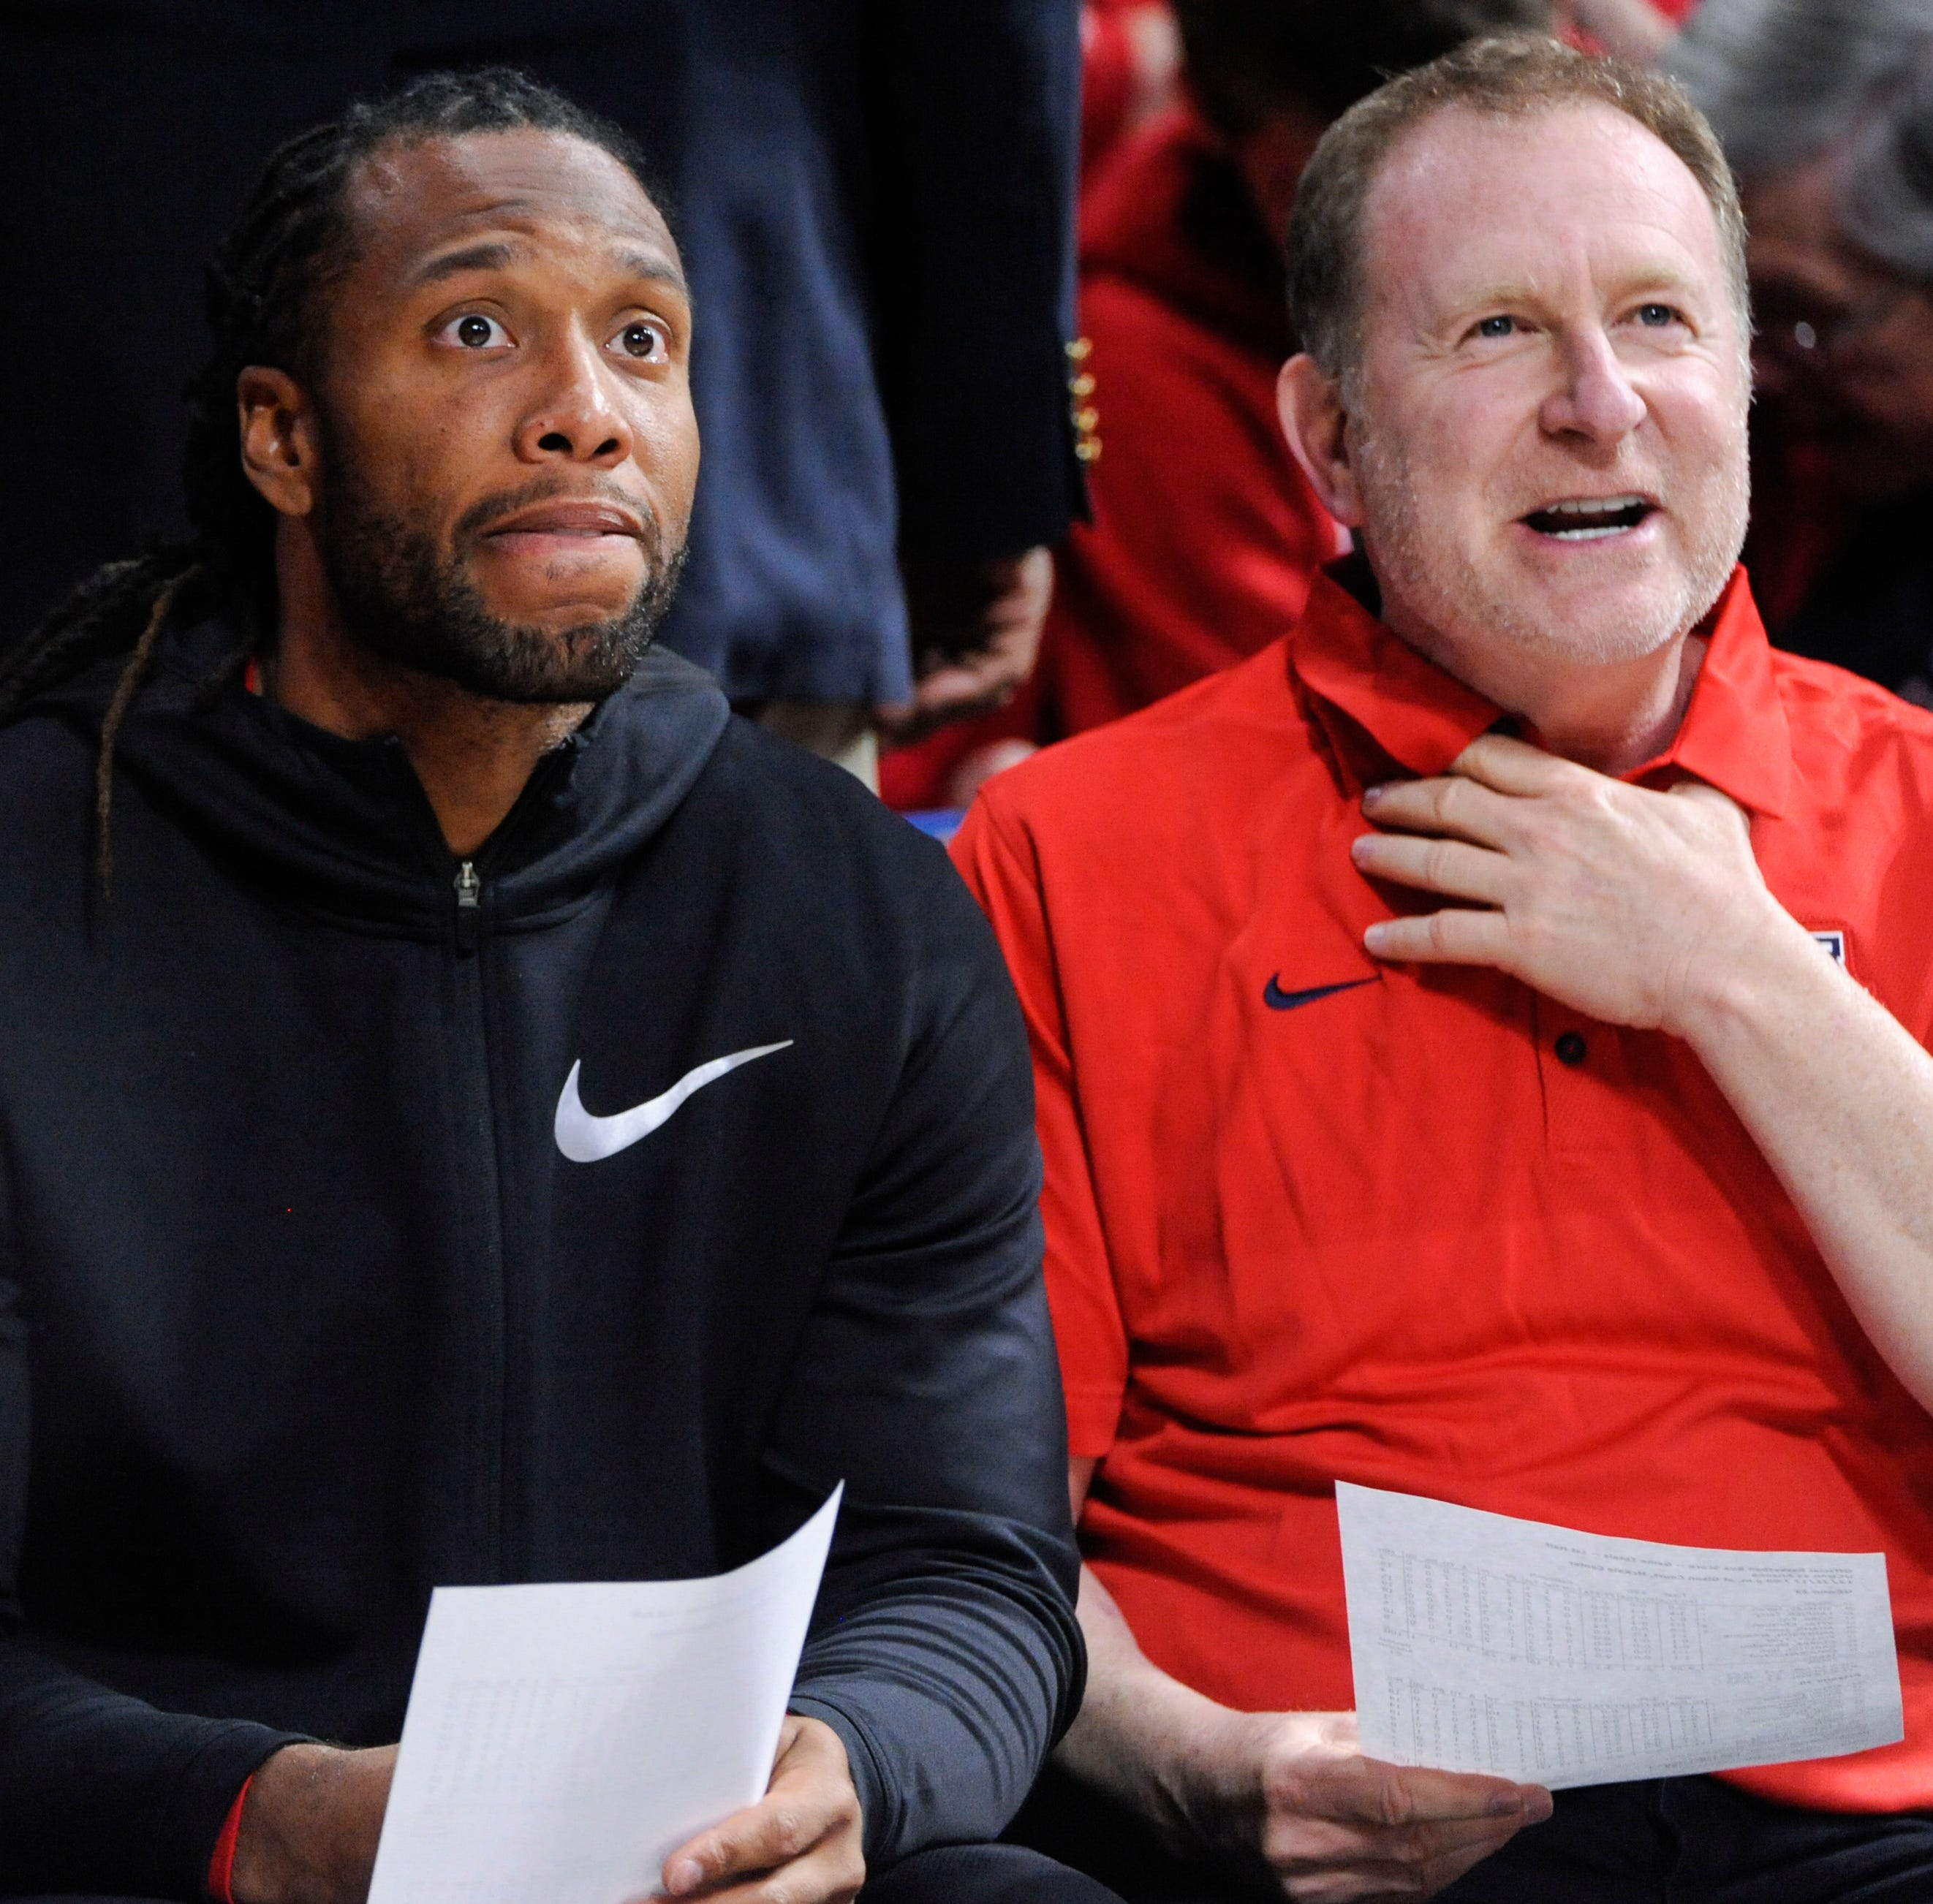 Larry Fitzgerald sat in on Phoenix Suns' front-office interviews, according to report